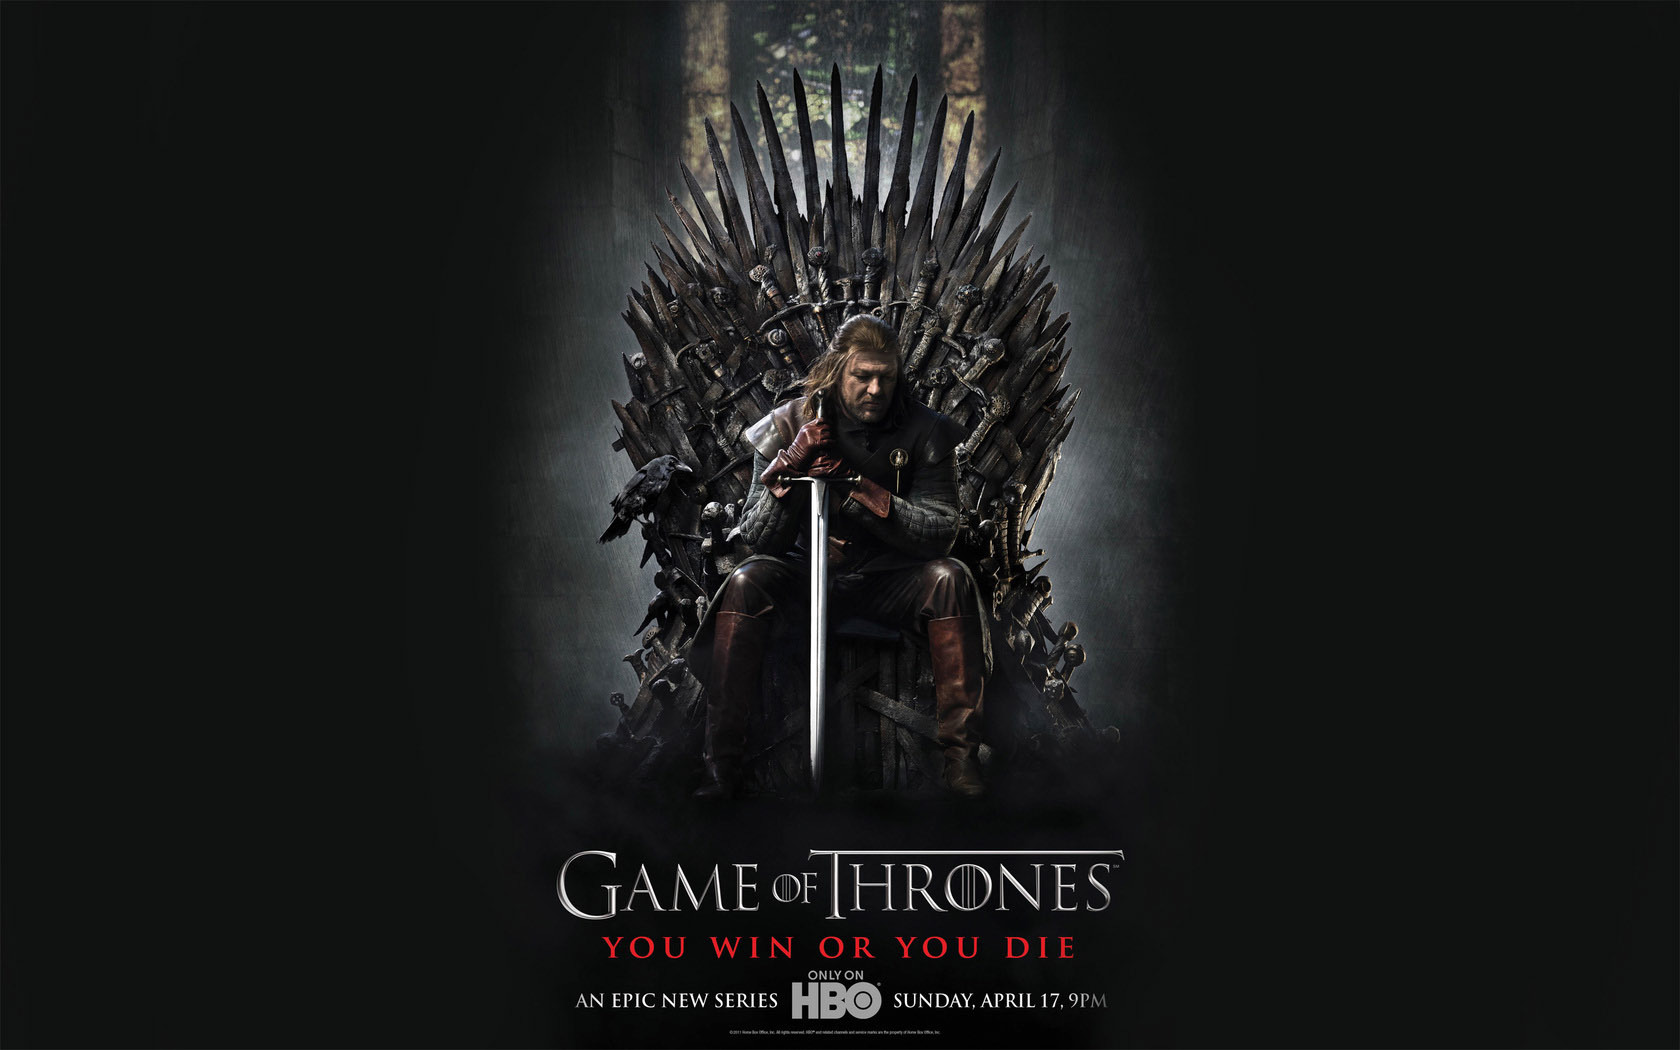 Download mobile wallpaper Cinema, People, Men, Game Of Thrones for free.